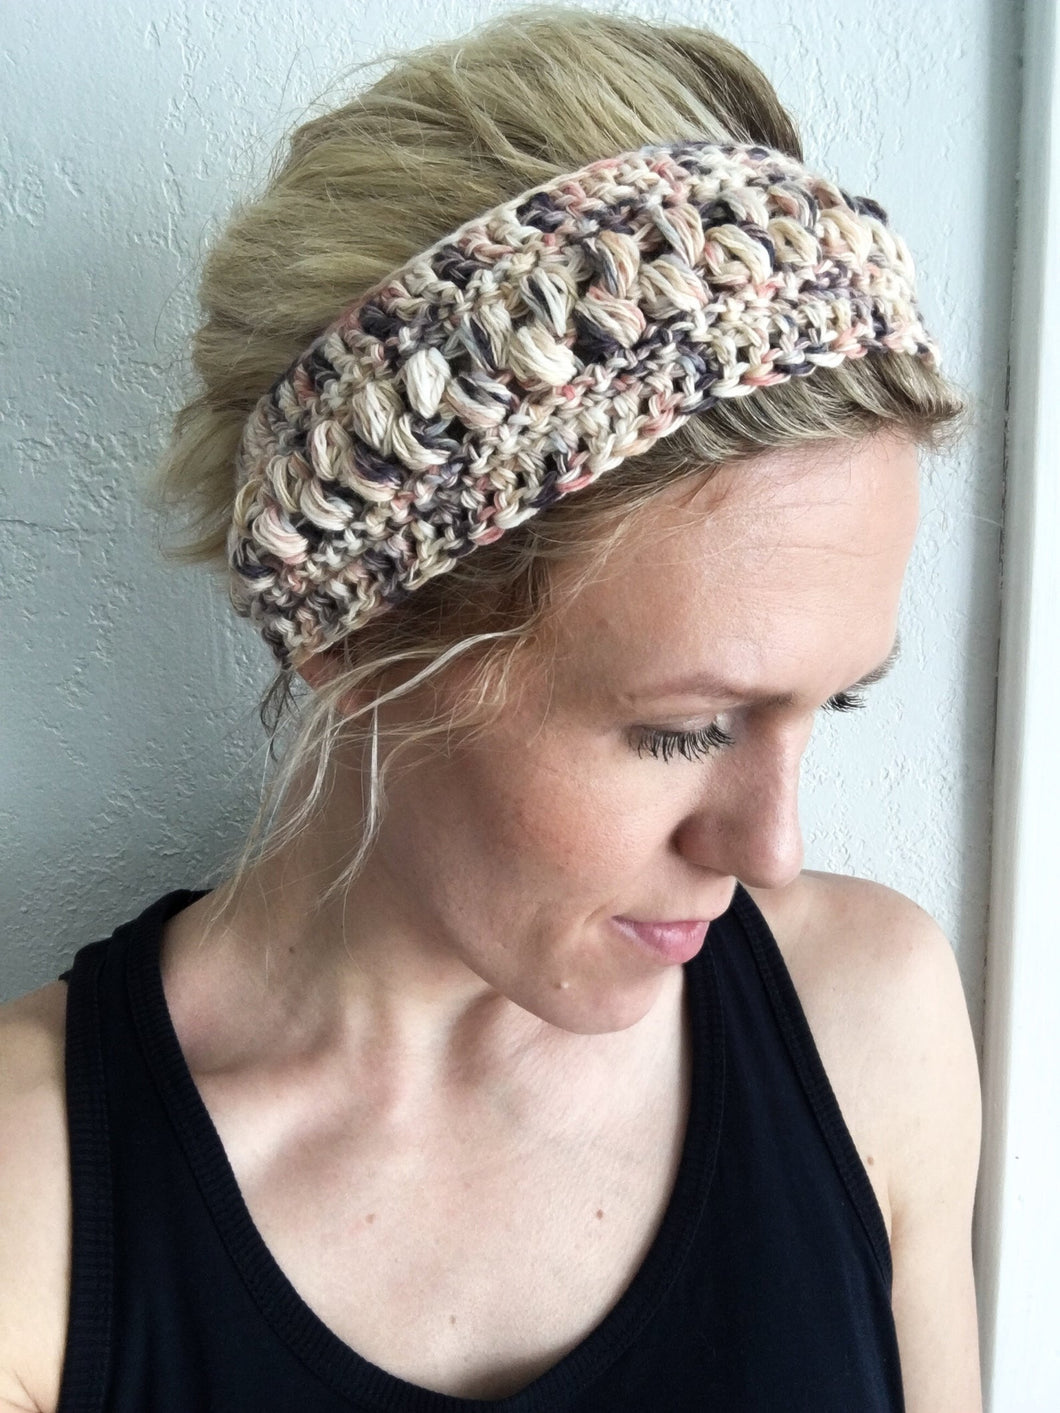 Crochet Pattern: Everyday Headwrap